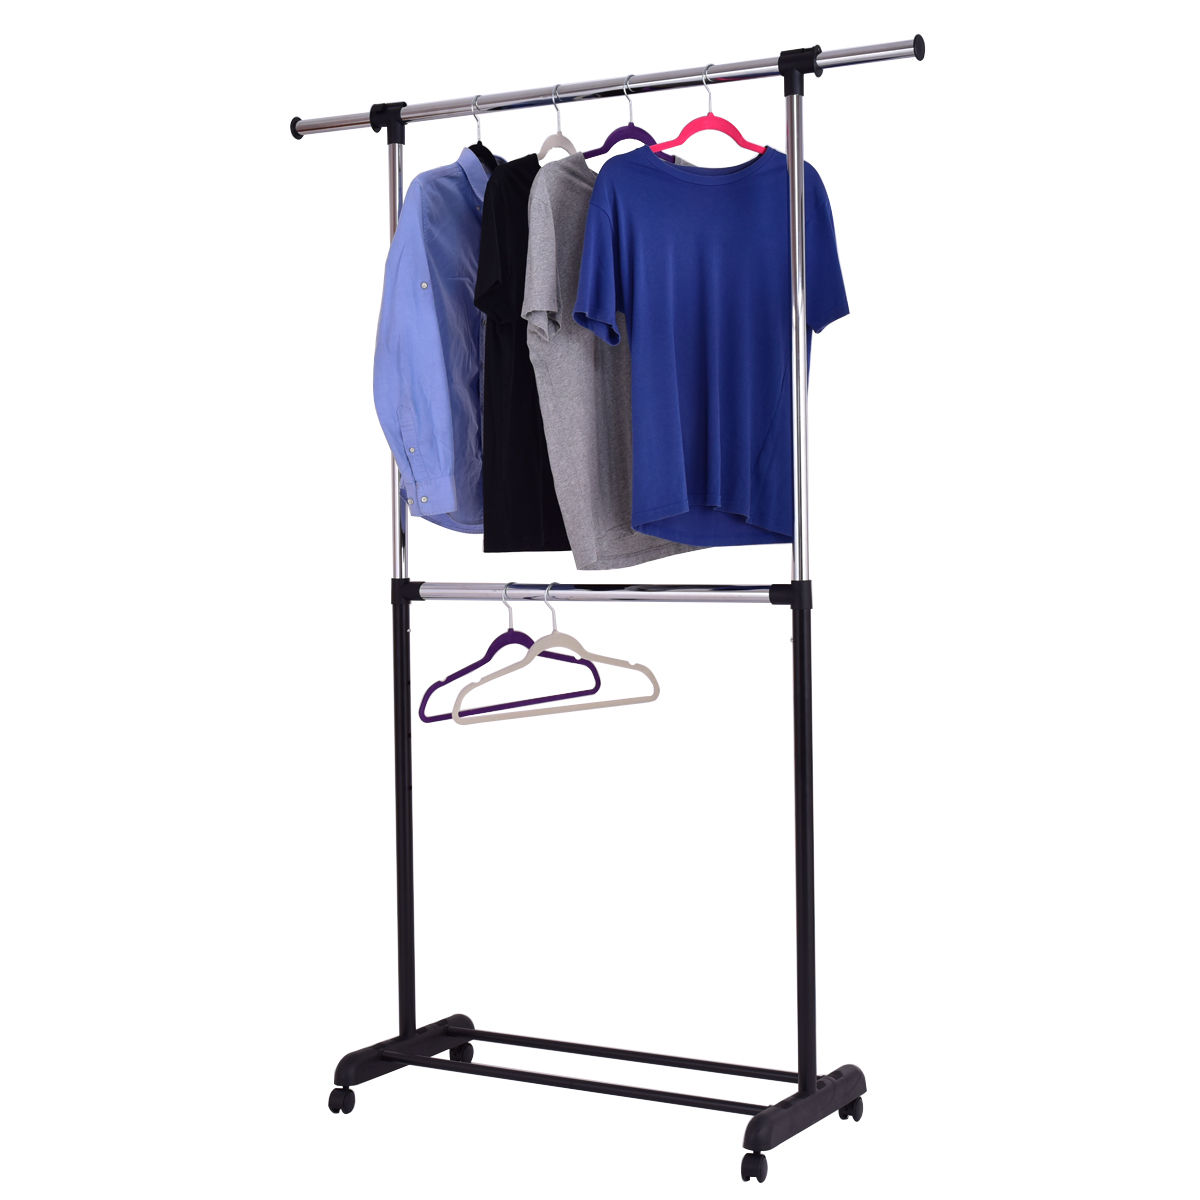 Zimtown Ajustble Portable Rolling Clothes Rack Single Hanging Garment Bar Heavy Duty Hanger